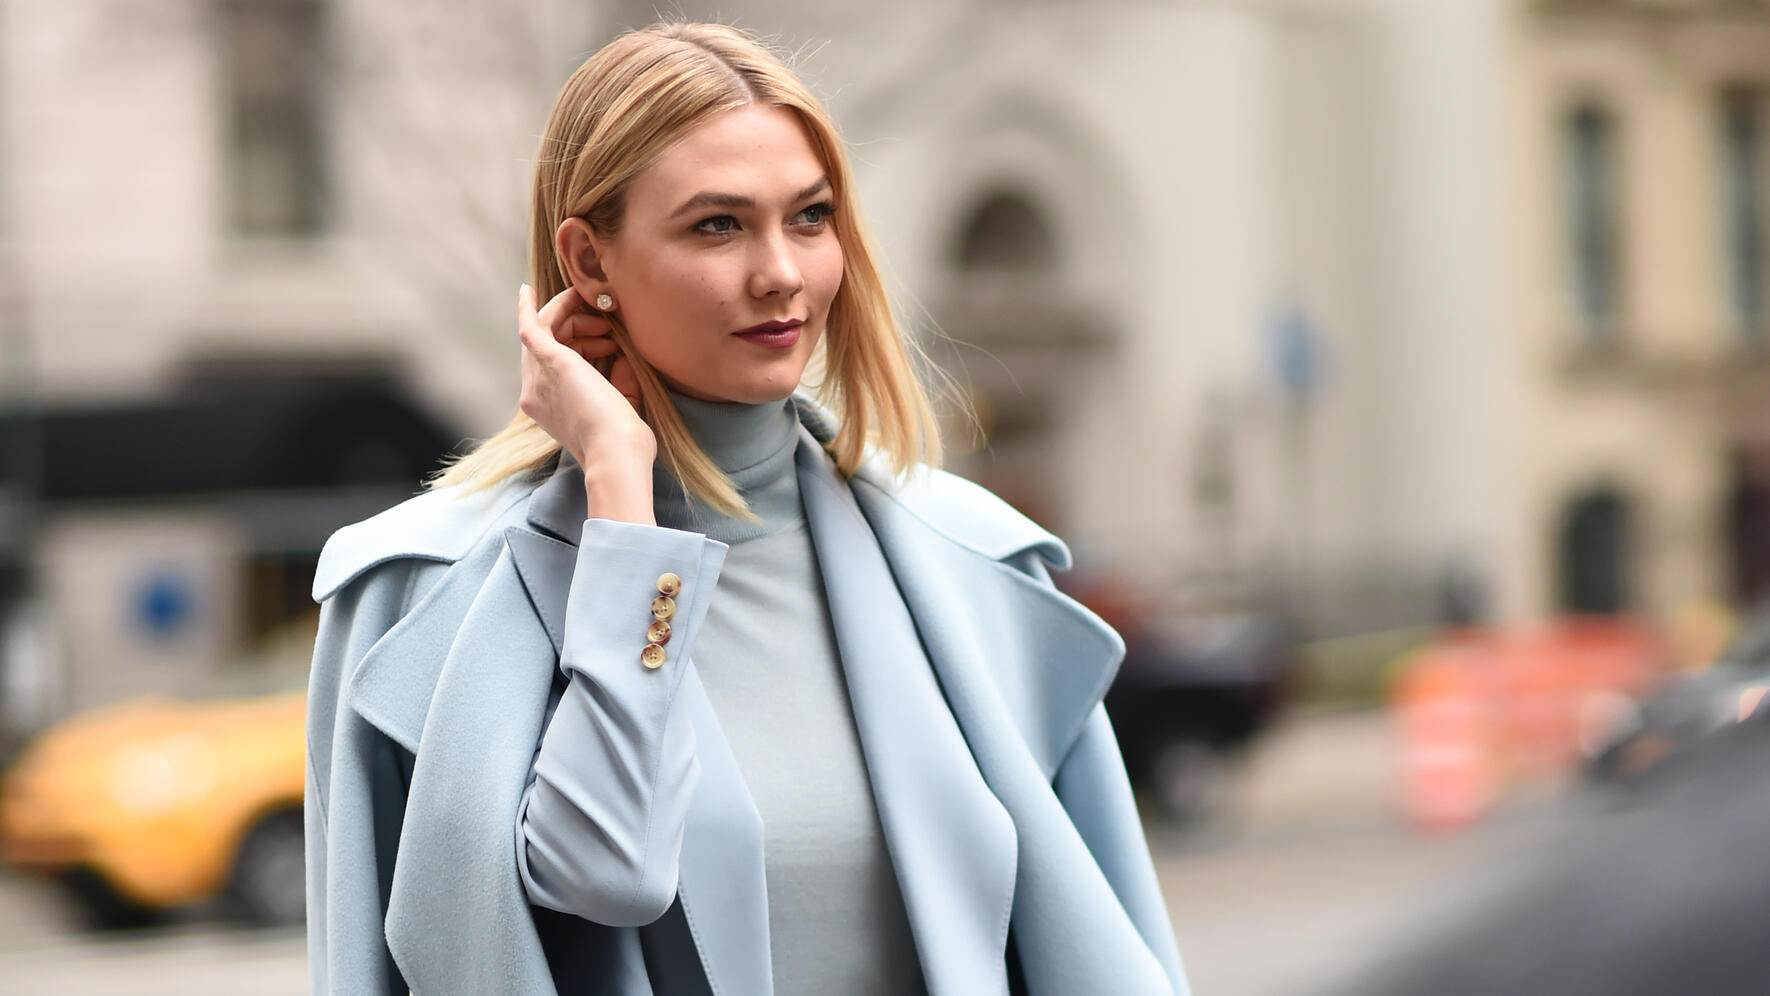 NEW YORK, NEW YORK - FEBRUARY 07: Karlie Kloss is seen wearing a baby blue Ralph Lauren outfit outside the Ralph Lauren show during New York Fashion Week: Women's Fall/Winter 2019 on February 07, 2019 in New York City. (Photo by Daniel Zuchnik/Getty Images)